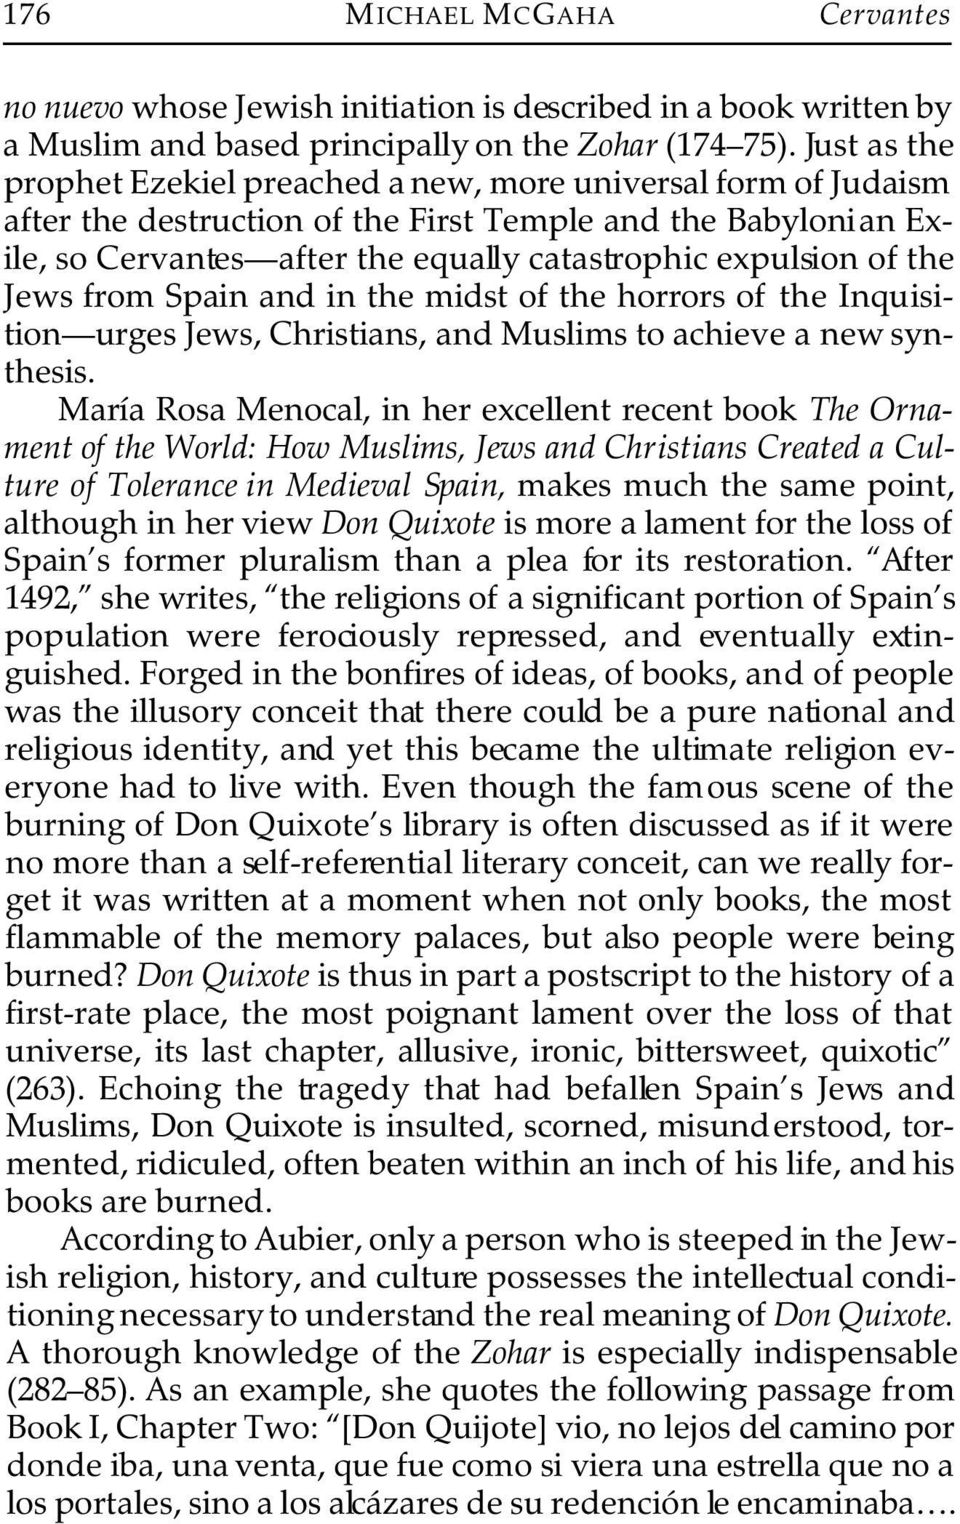 the Jews from Spain and in the midst of the horrors of the Inquisition urges Jews, Christians, and Muslims to achieve a new synthesis.